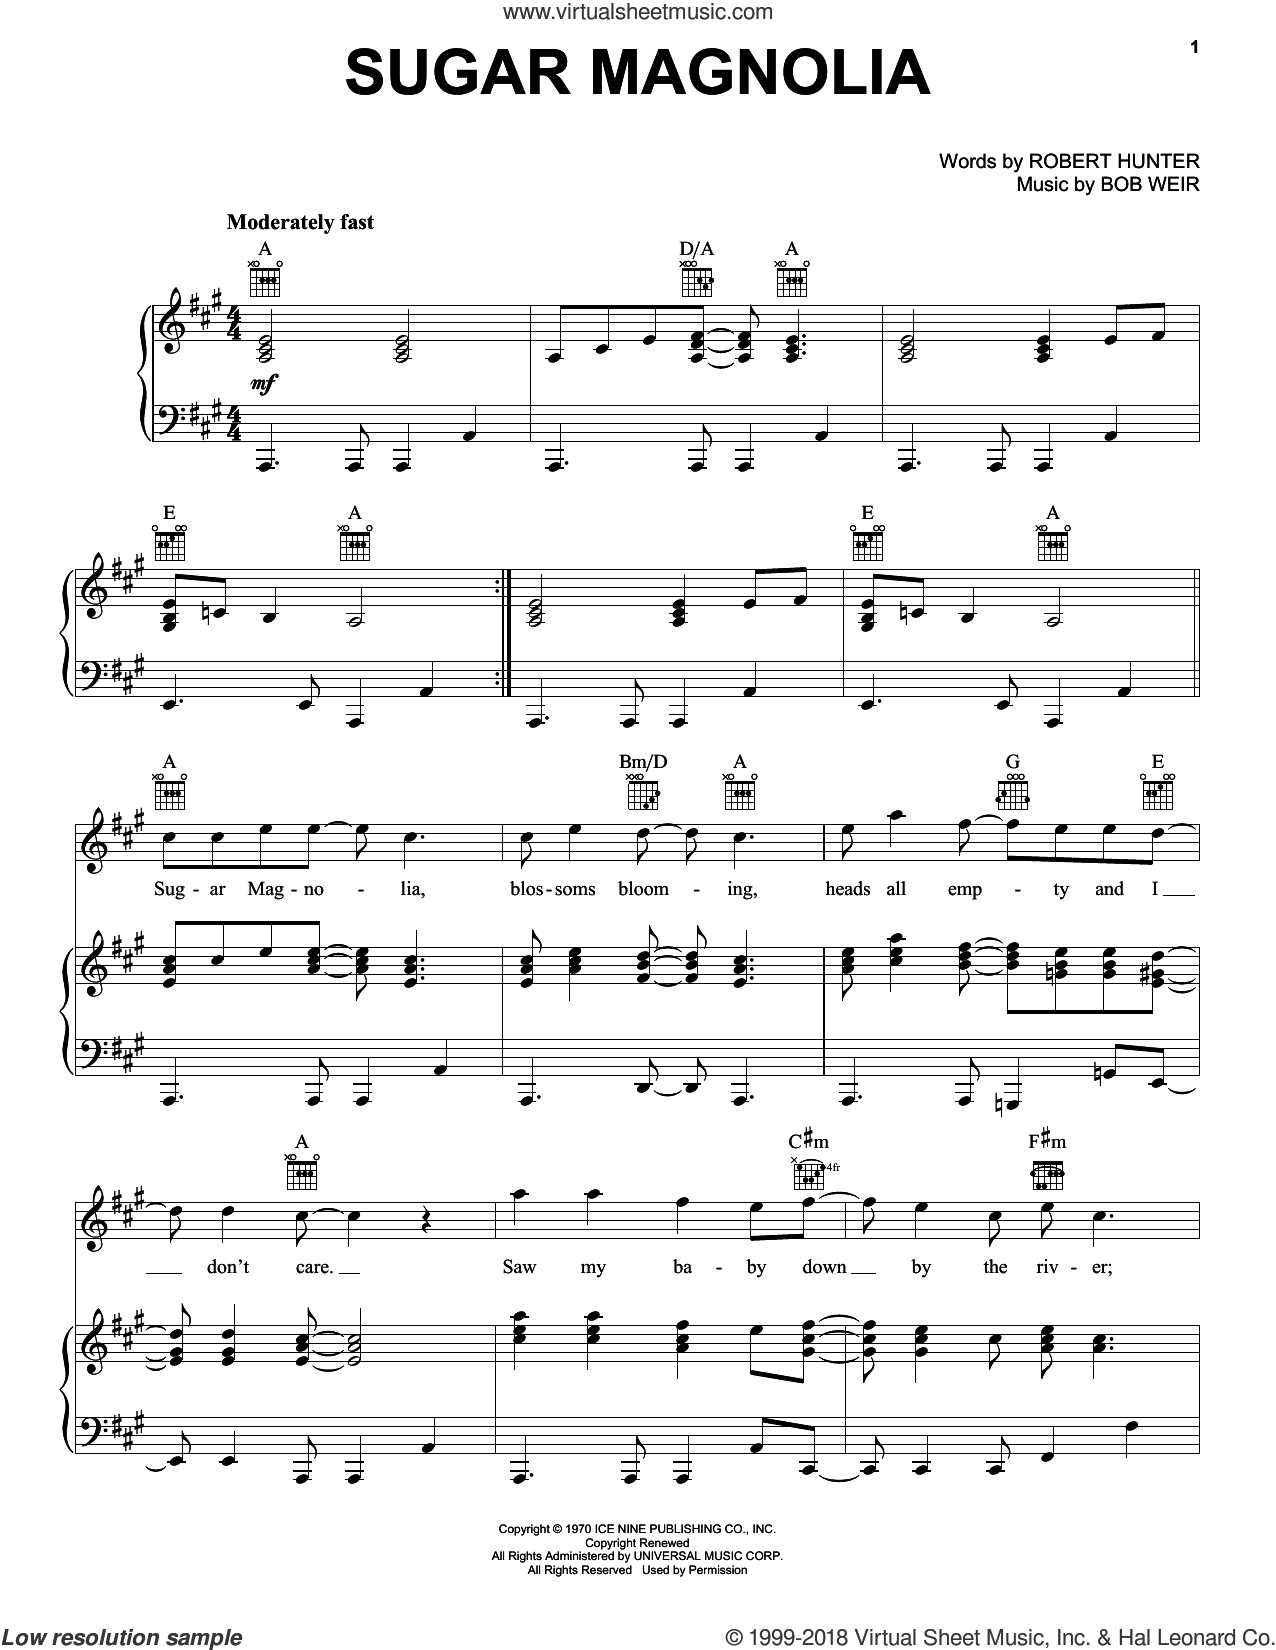 Sugar Magnolia sheet music for voice, piano or guitar by Robert Hunter